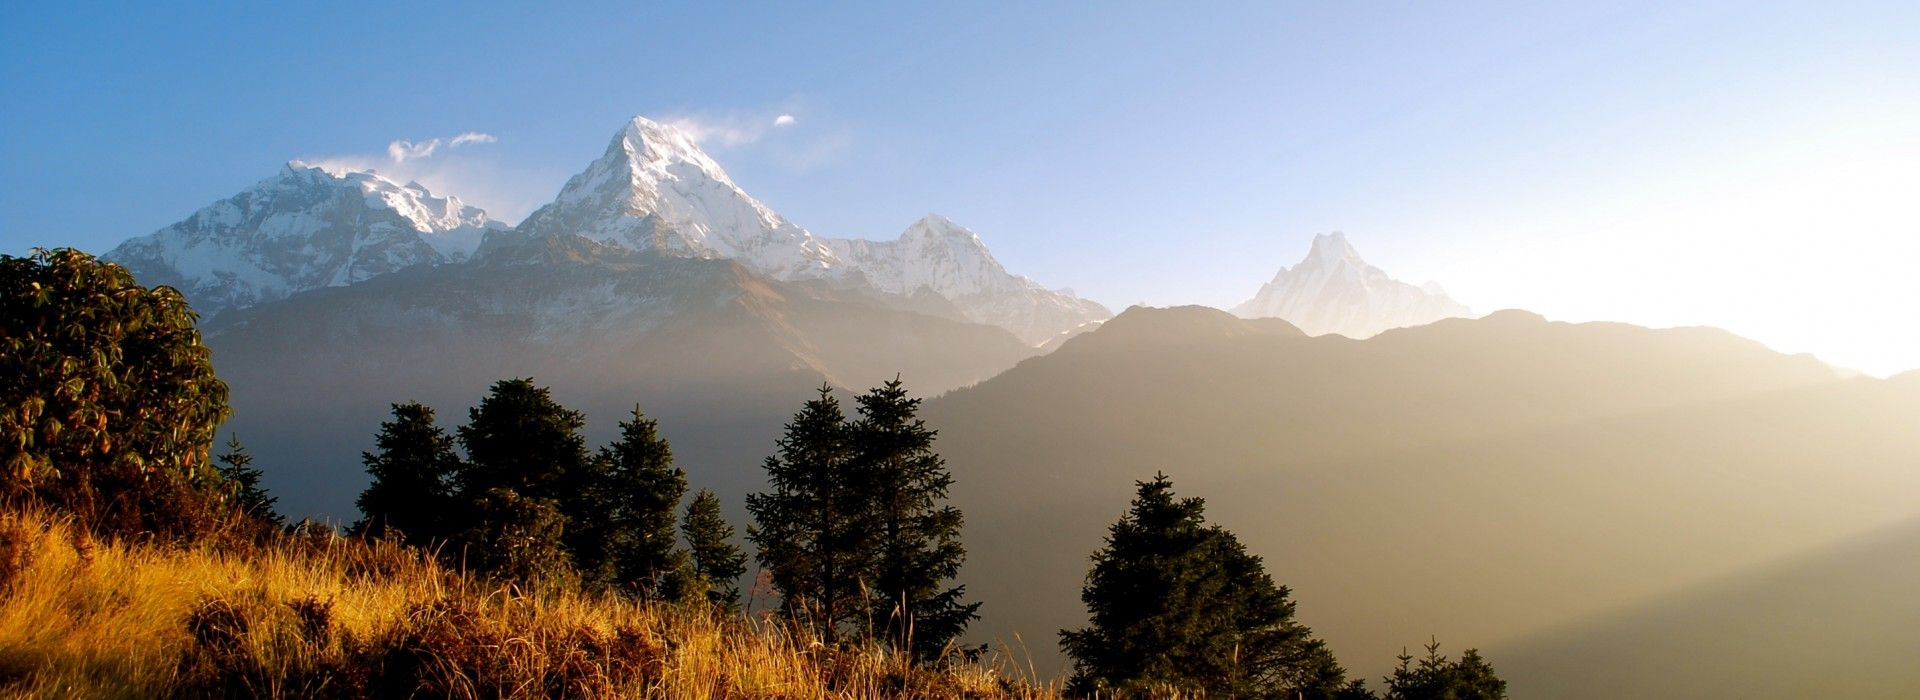 Sightseeing, attractions, culture and history Tours in Annapurna Region